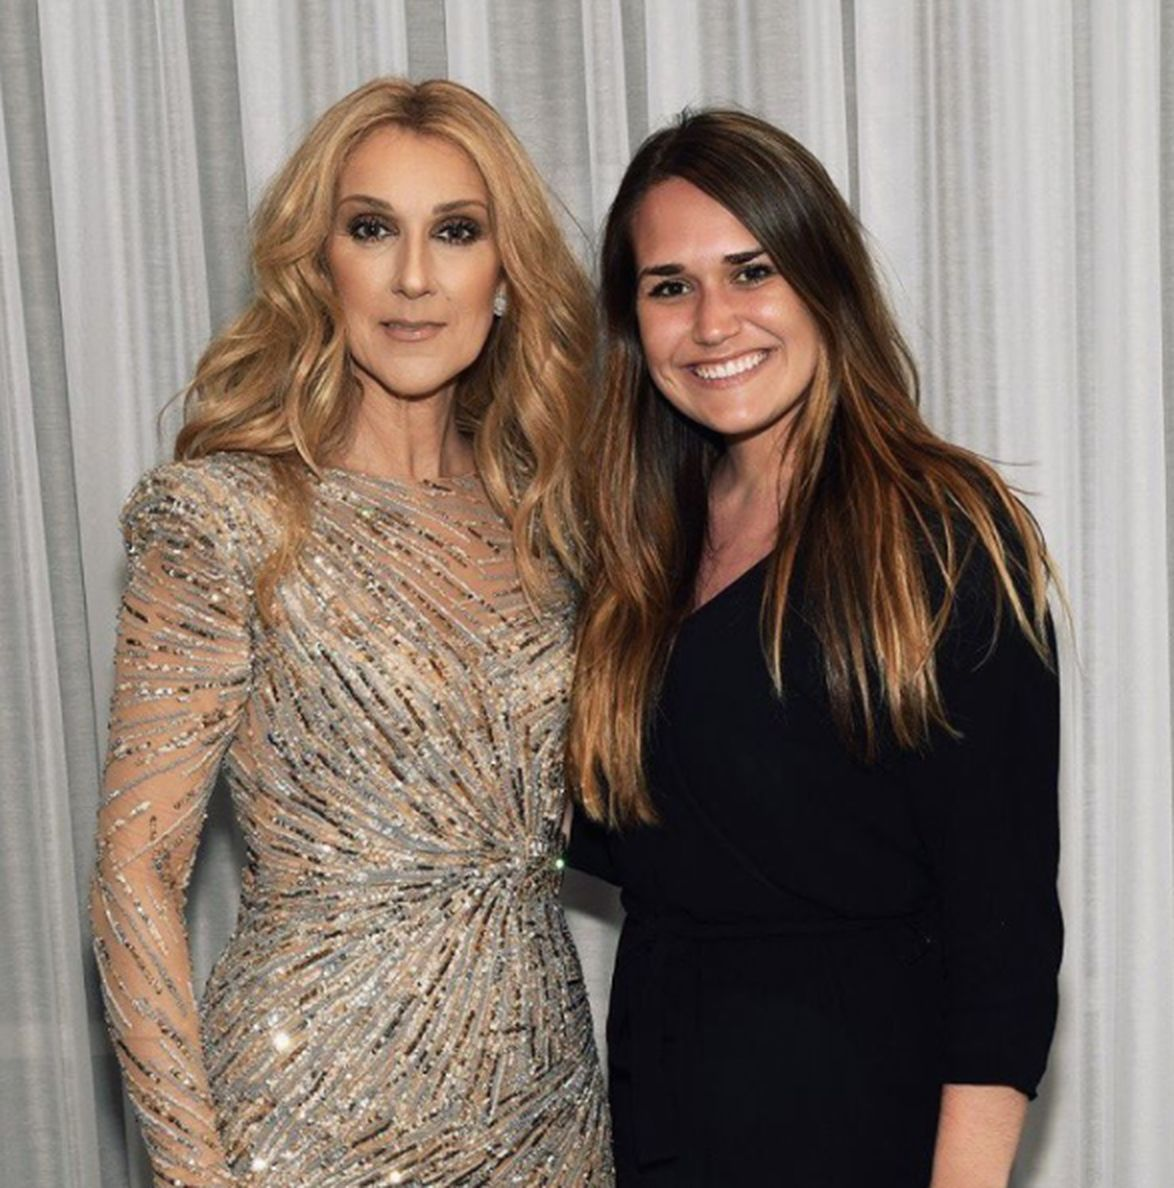 The power of love celine dion celine dion meet greet las vegas celine dion meet greet las vegas may 2017 kristyandbryce Images